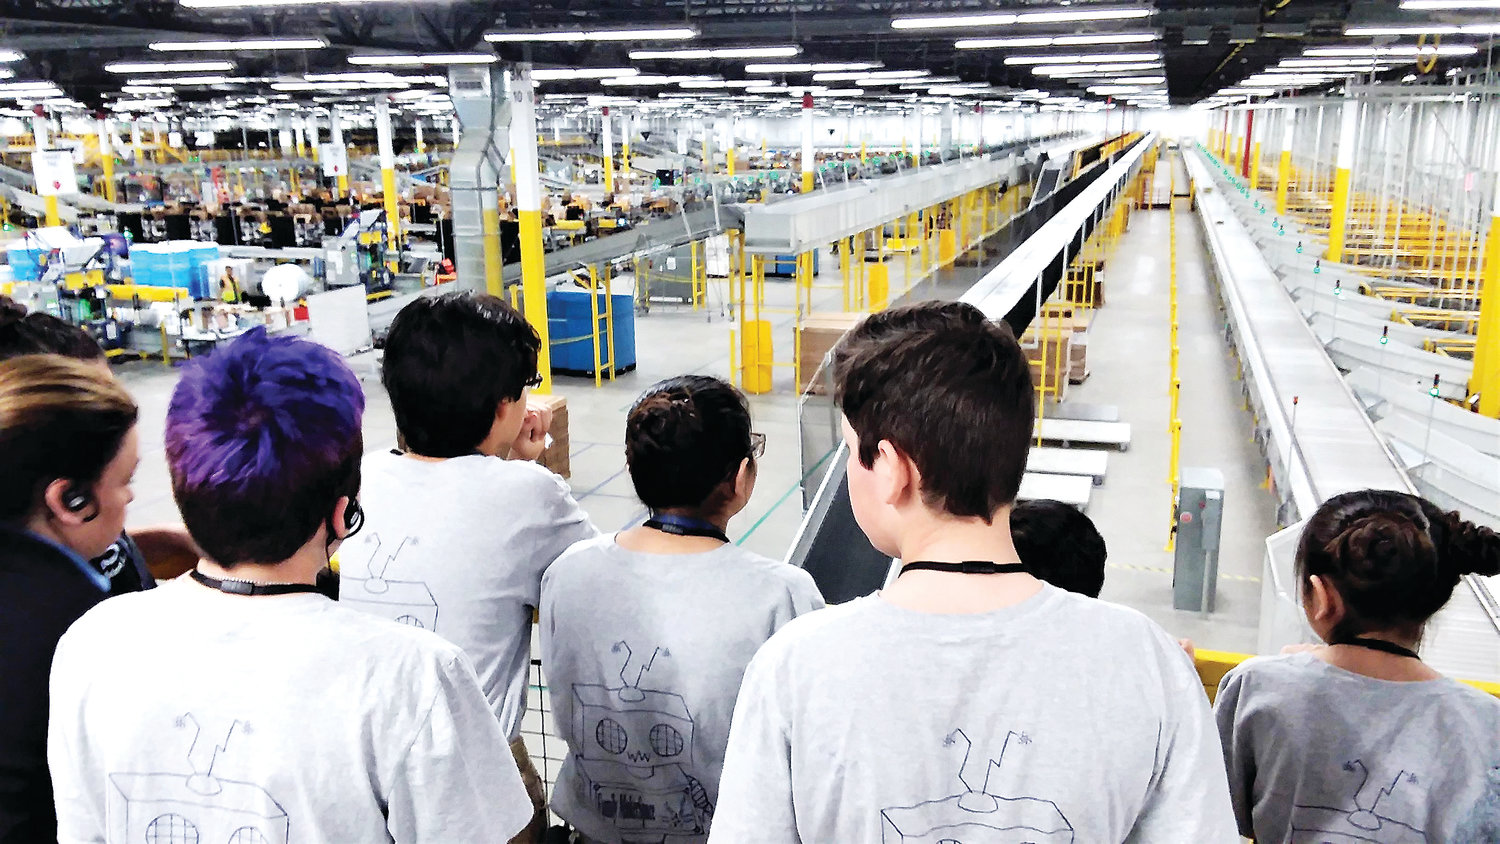 Students from Thornton's STEM Launch School look out over the Thornton Amazon warehouse April 10 from a fourth floor vantage.